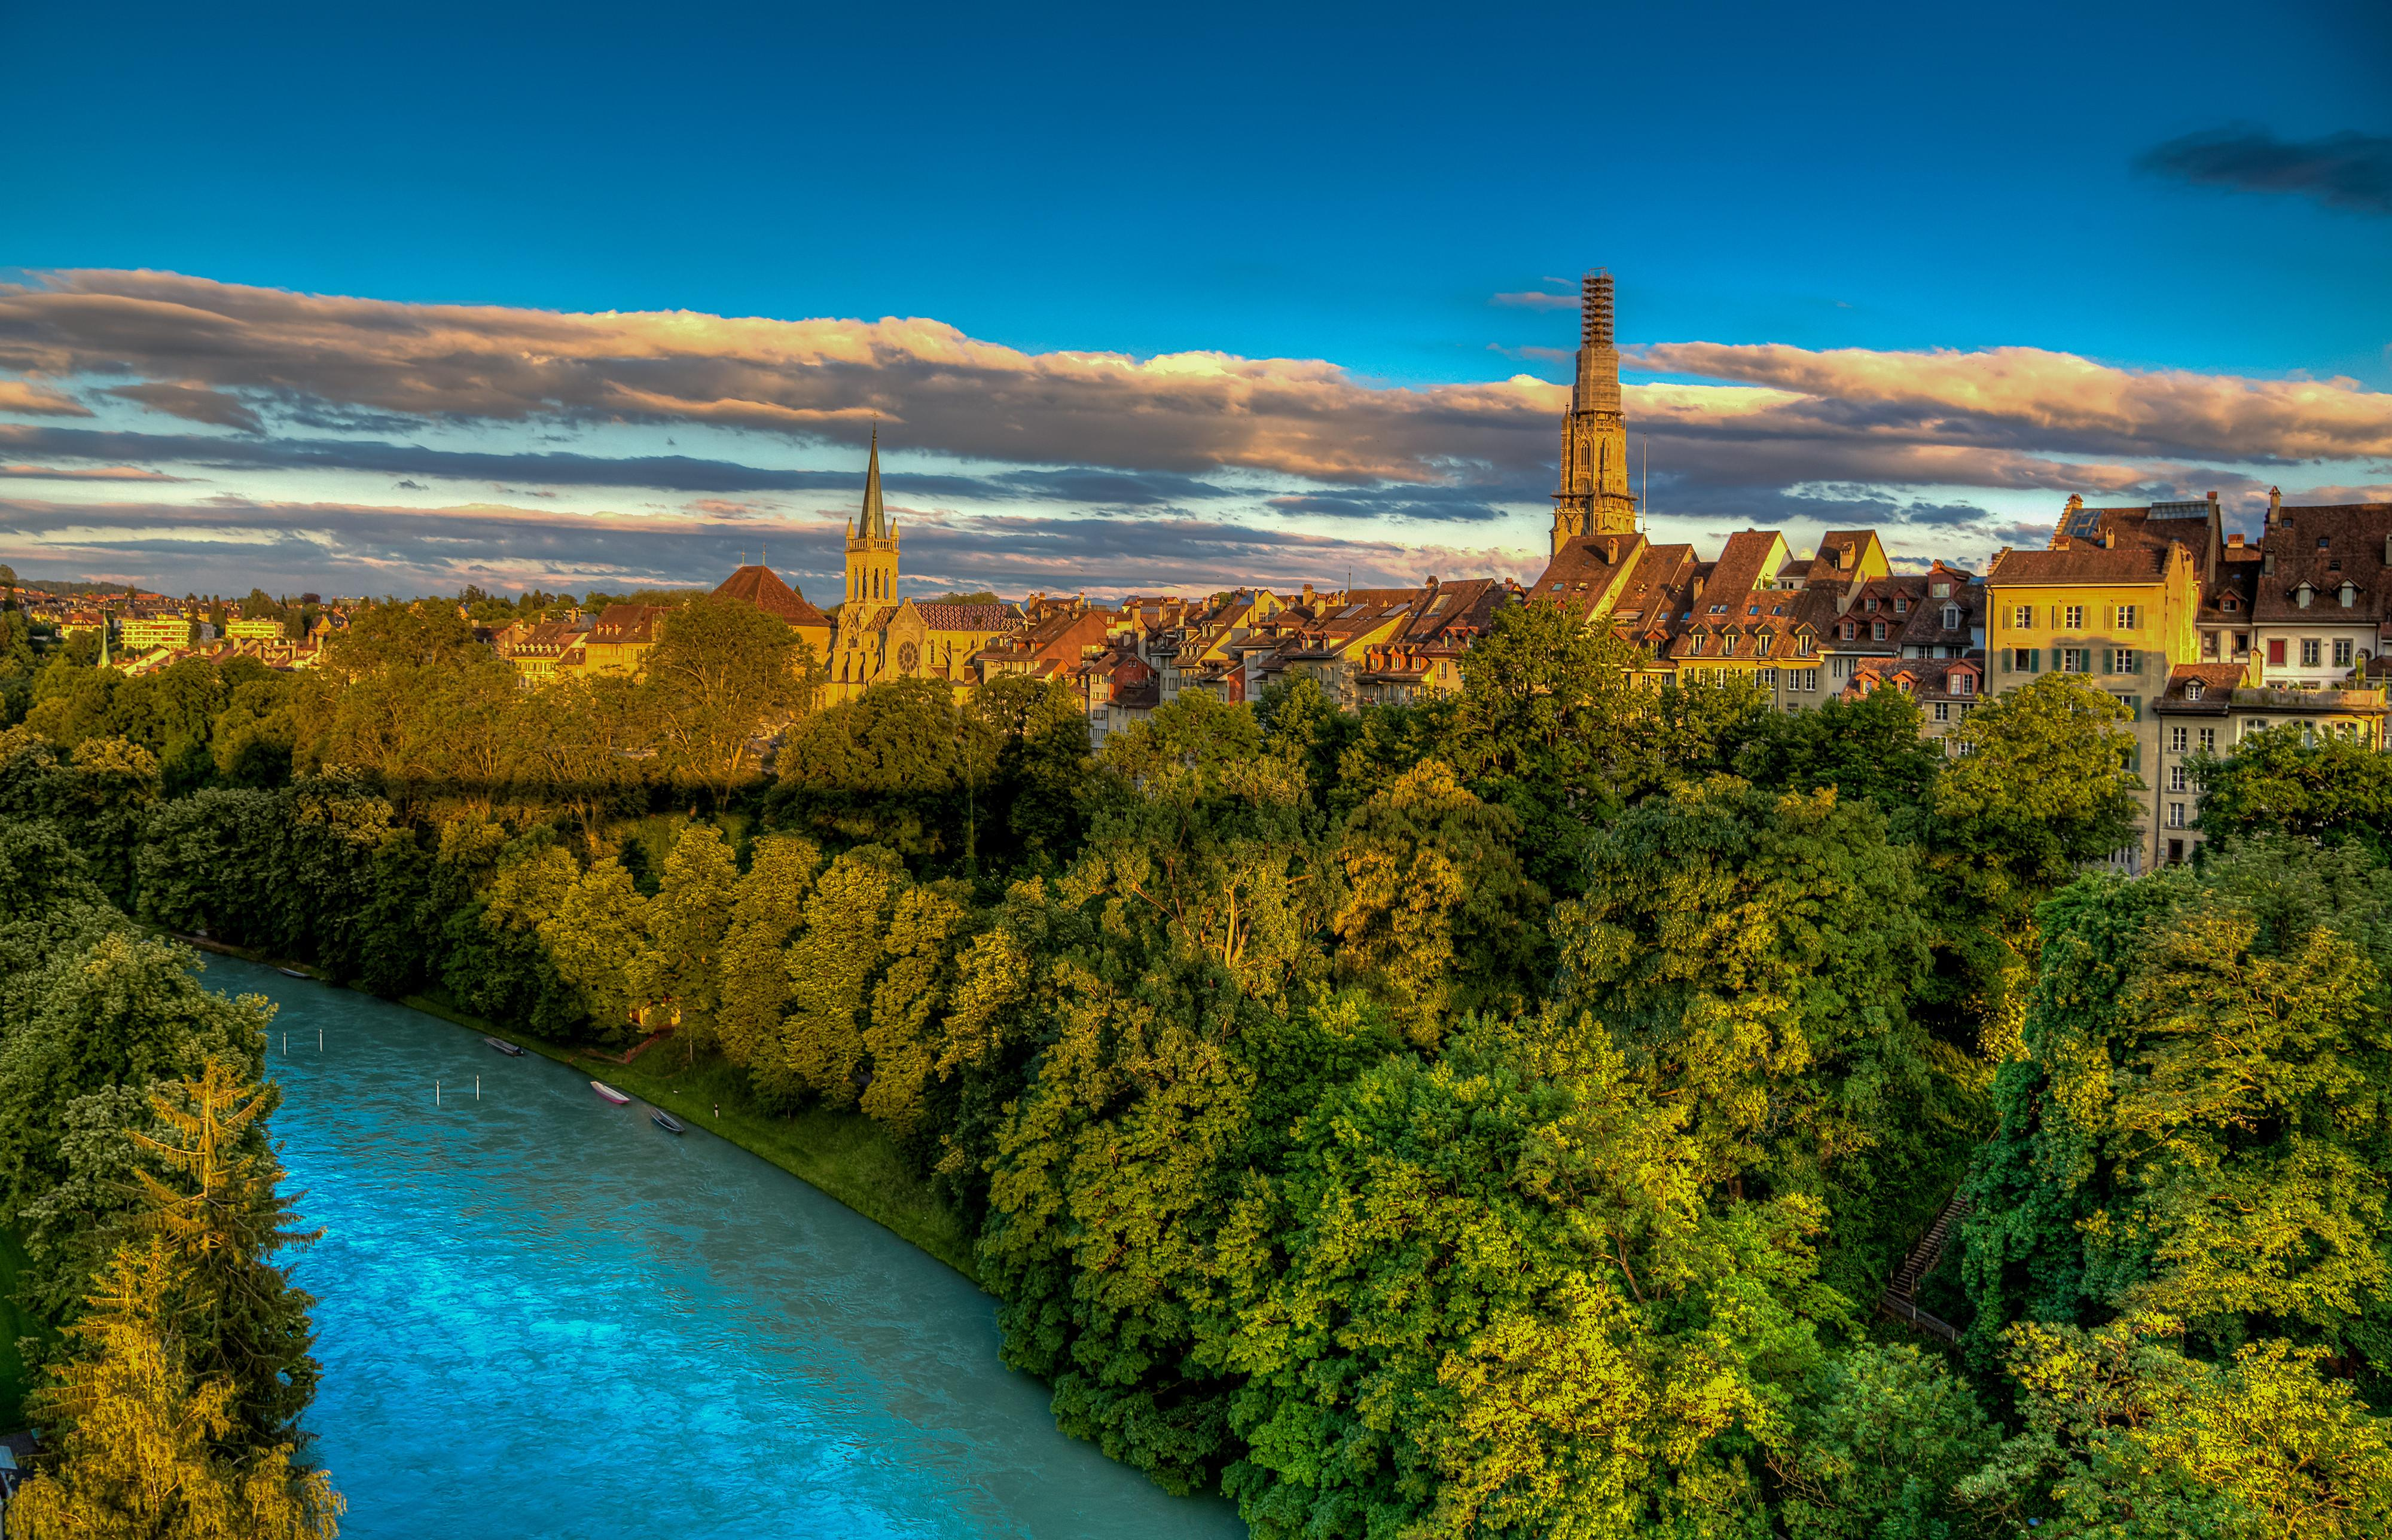 Bern, Switzerland 4k Ultra HD Wallpaper | Background Image ...